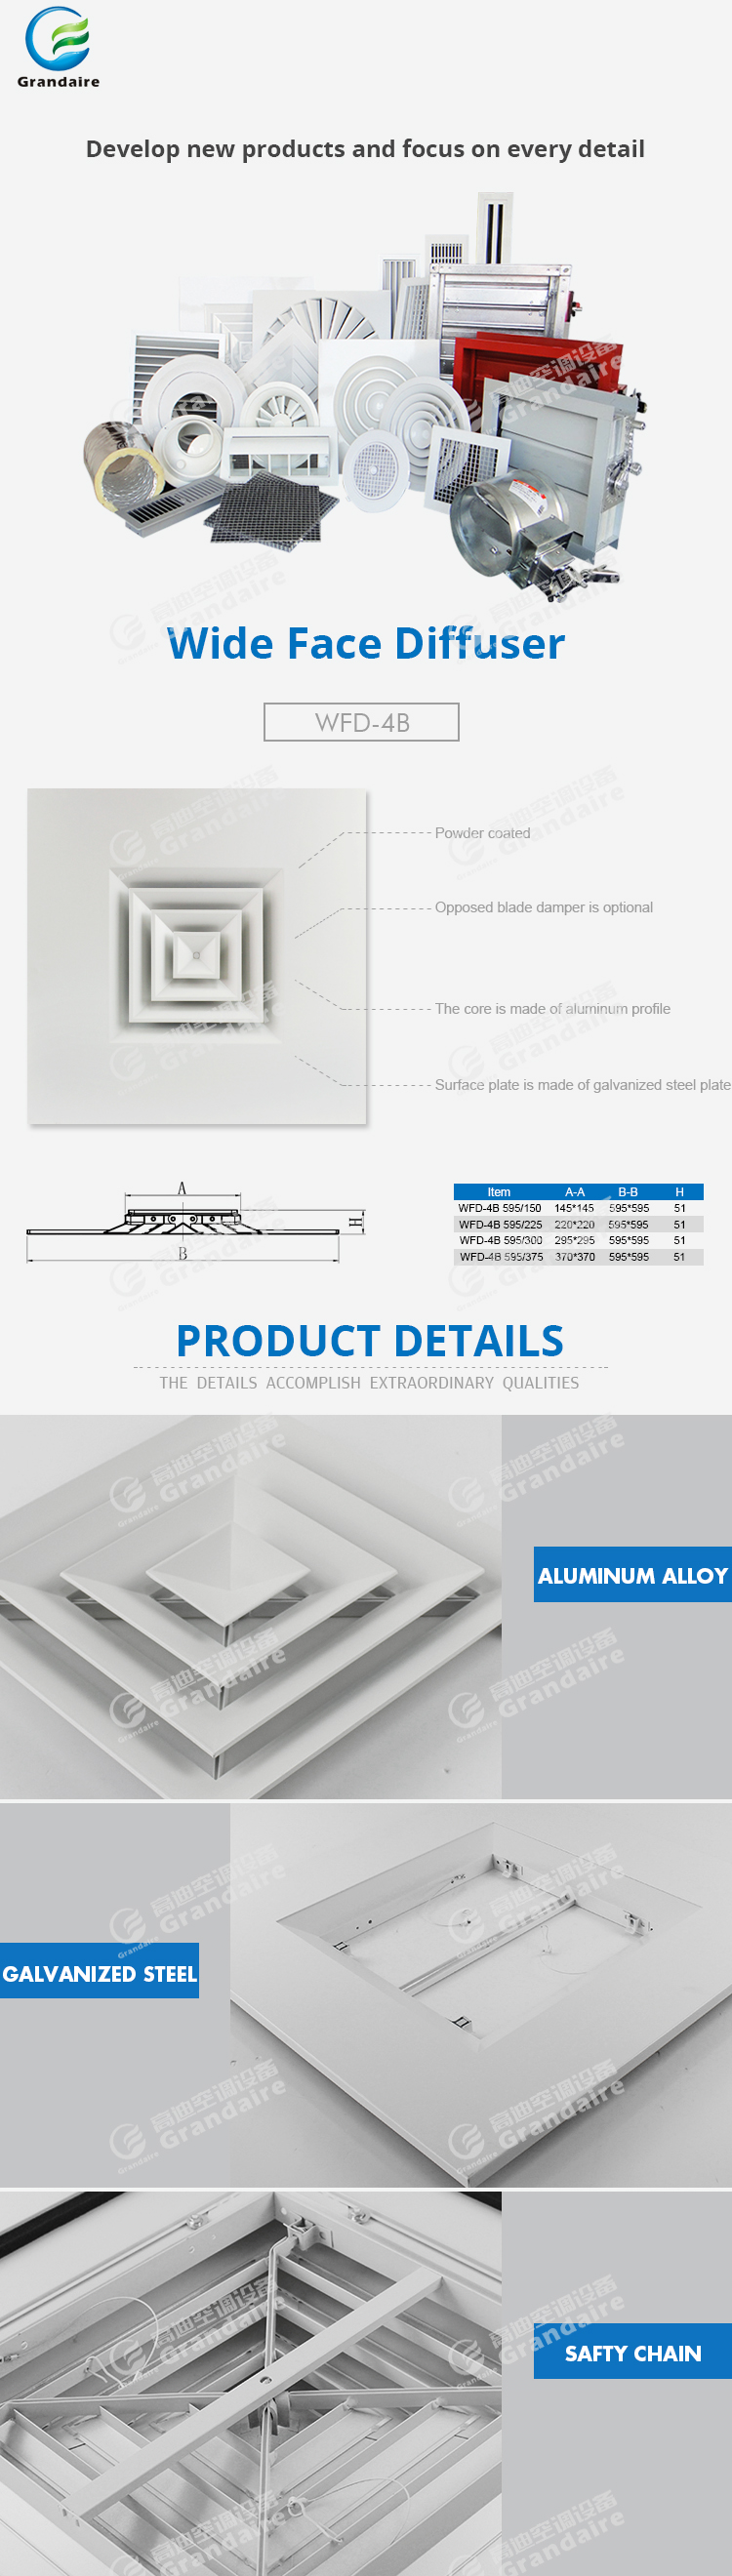 Steel frame 4 way air diffuser made in china